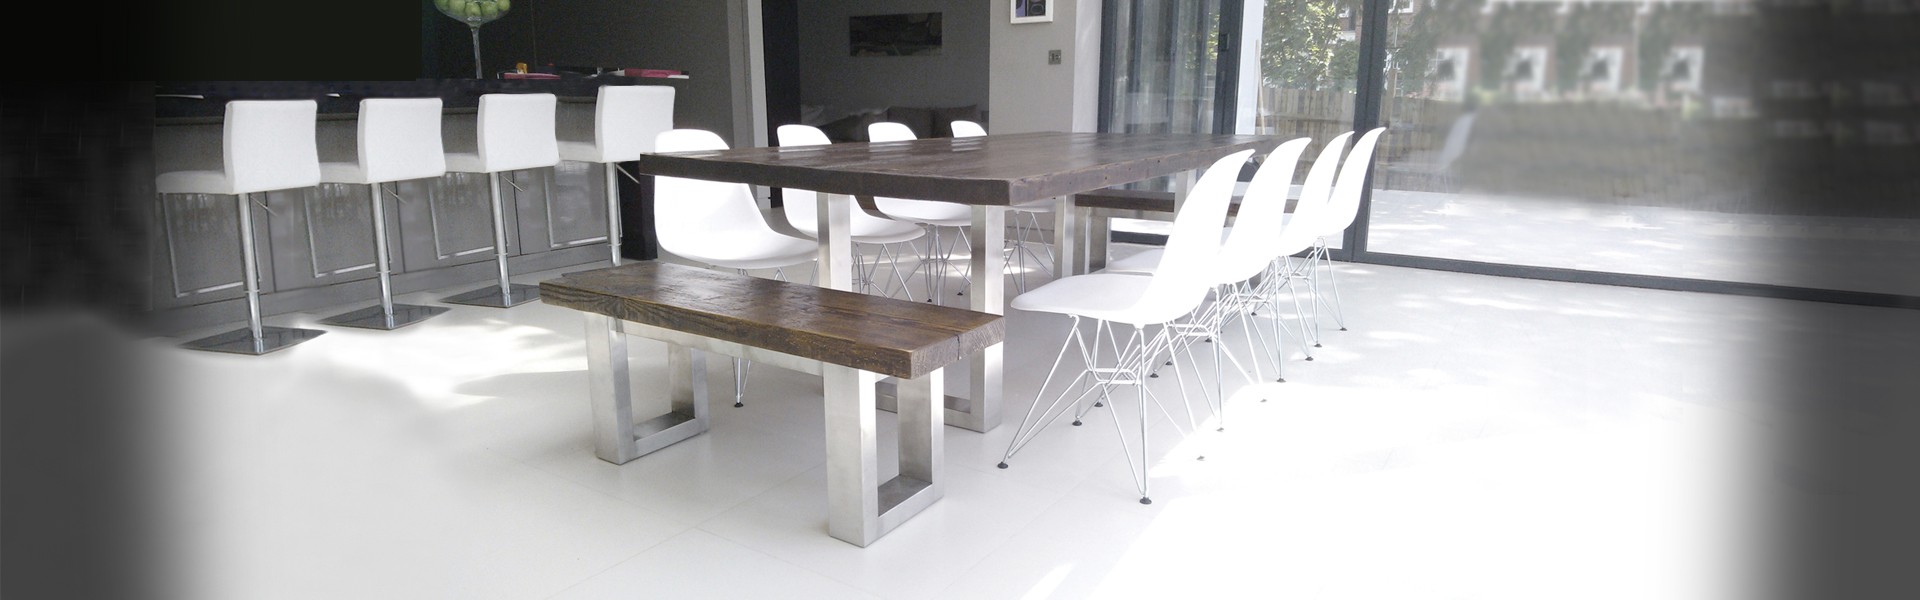 reclaimed-wood-table-and-benches